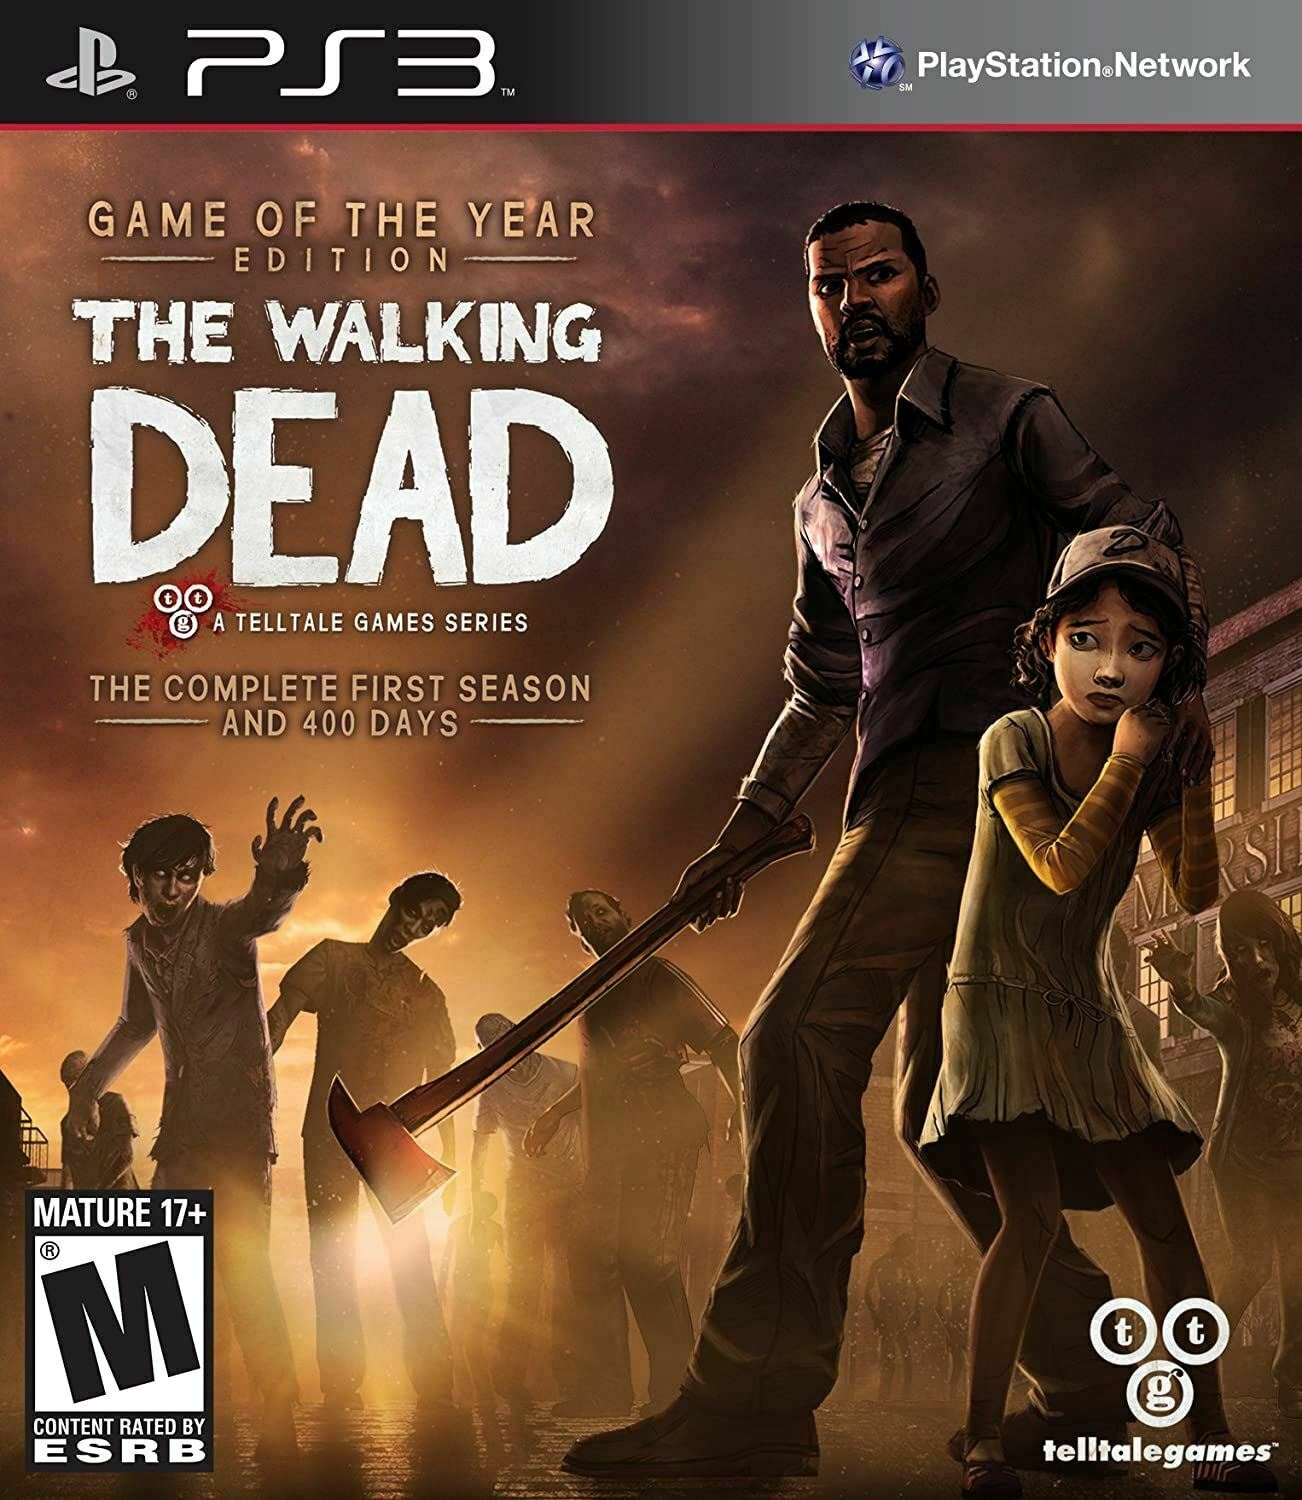 THE WALKING DEAD - A TELLTALE GAMES SERIES GOTY GAME OF THE YEAR EDITION PS3